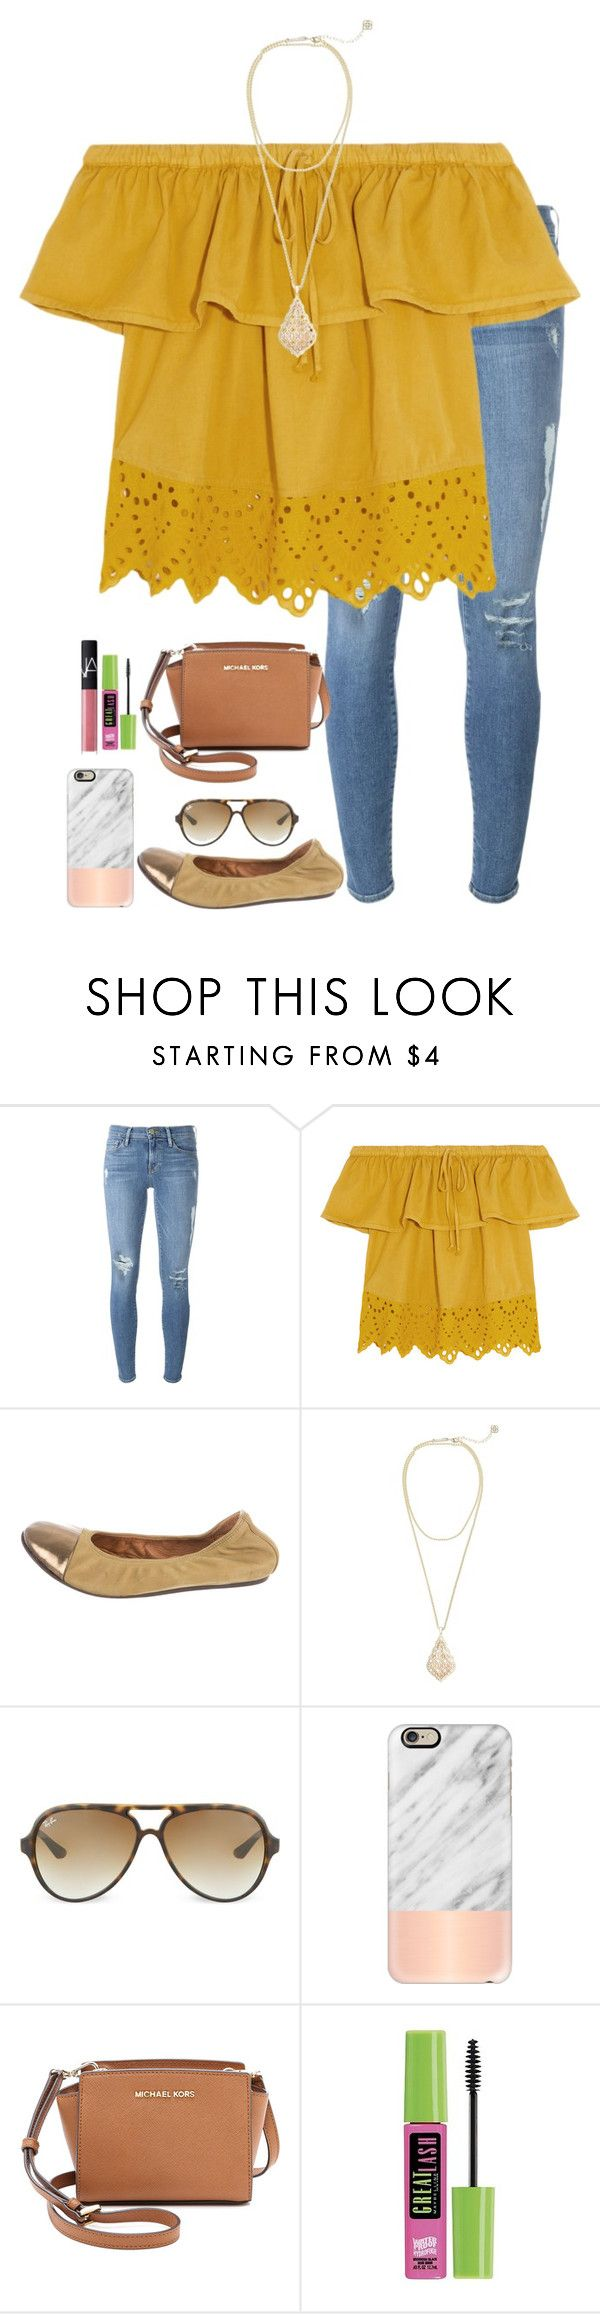 """shopping!"" by apemb ❤ liked on Polyvore featuring Frame Denim, Madewell, Lanvin, Kendra Scott, Ray-Ban, Casetify, MICHAEL Michael Kors, Maybelline and NARS Cosmetics"